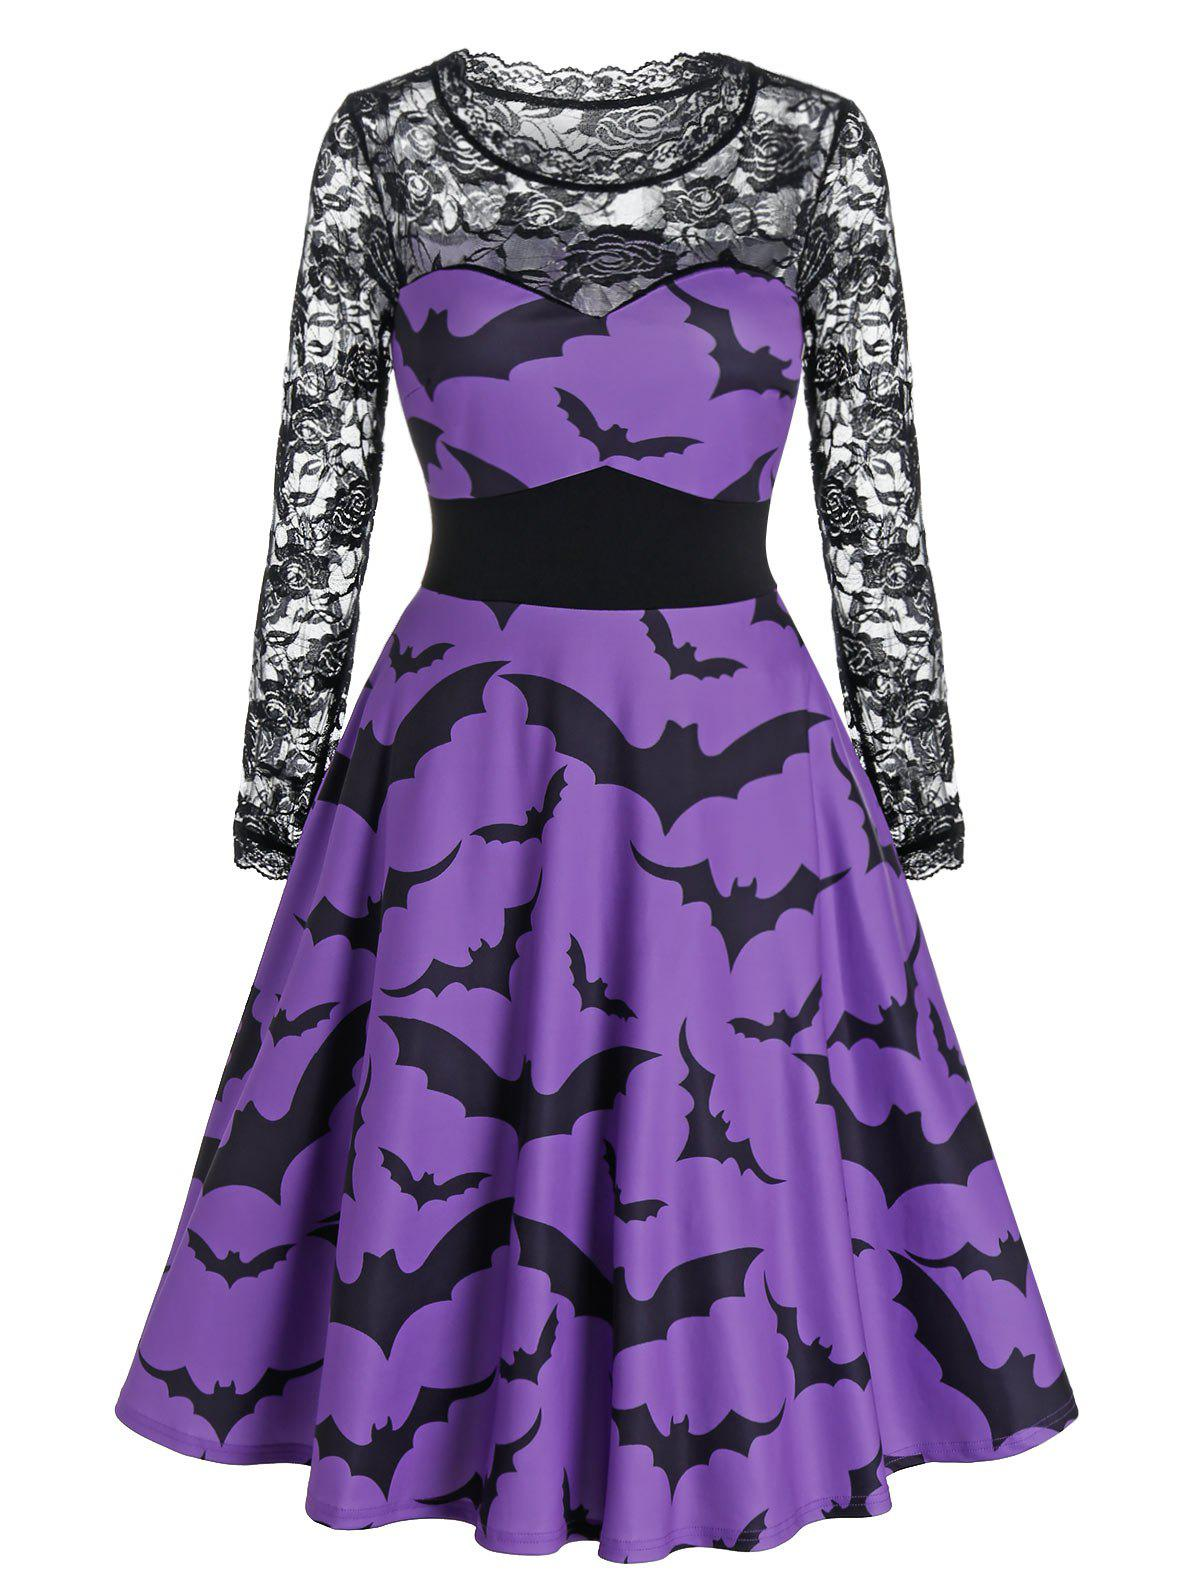 Halloween Bat Print Sheer Lace Panel High Waist Dress - PURPLE IRIS L